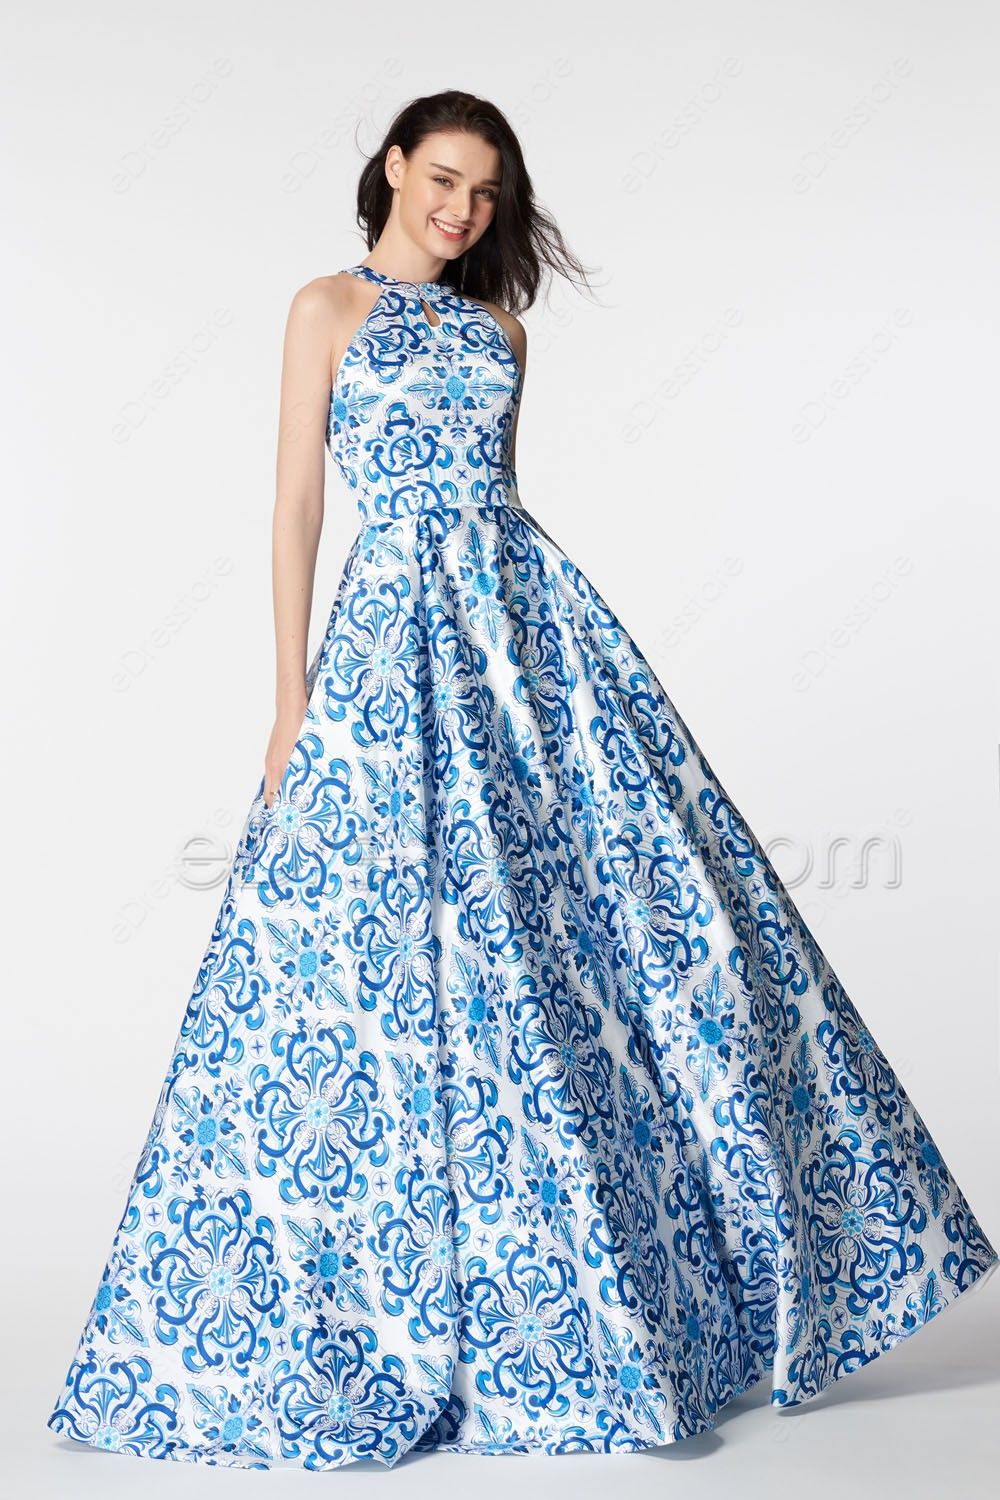 aed4a64fe5d0 The blue printed prom dress features O neckline